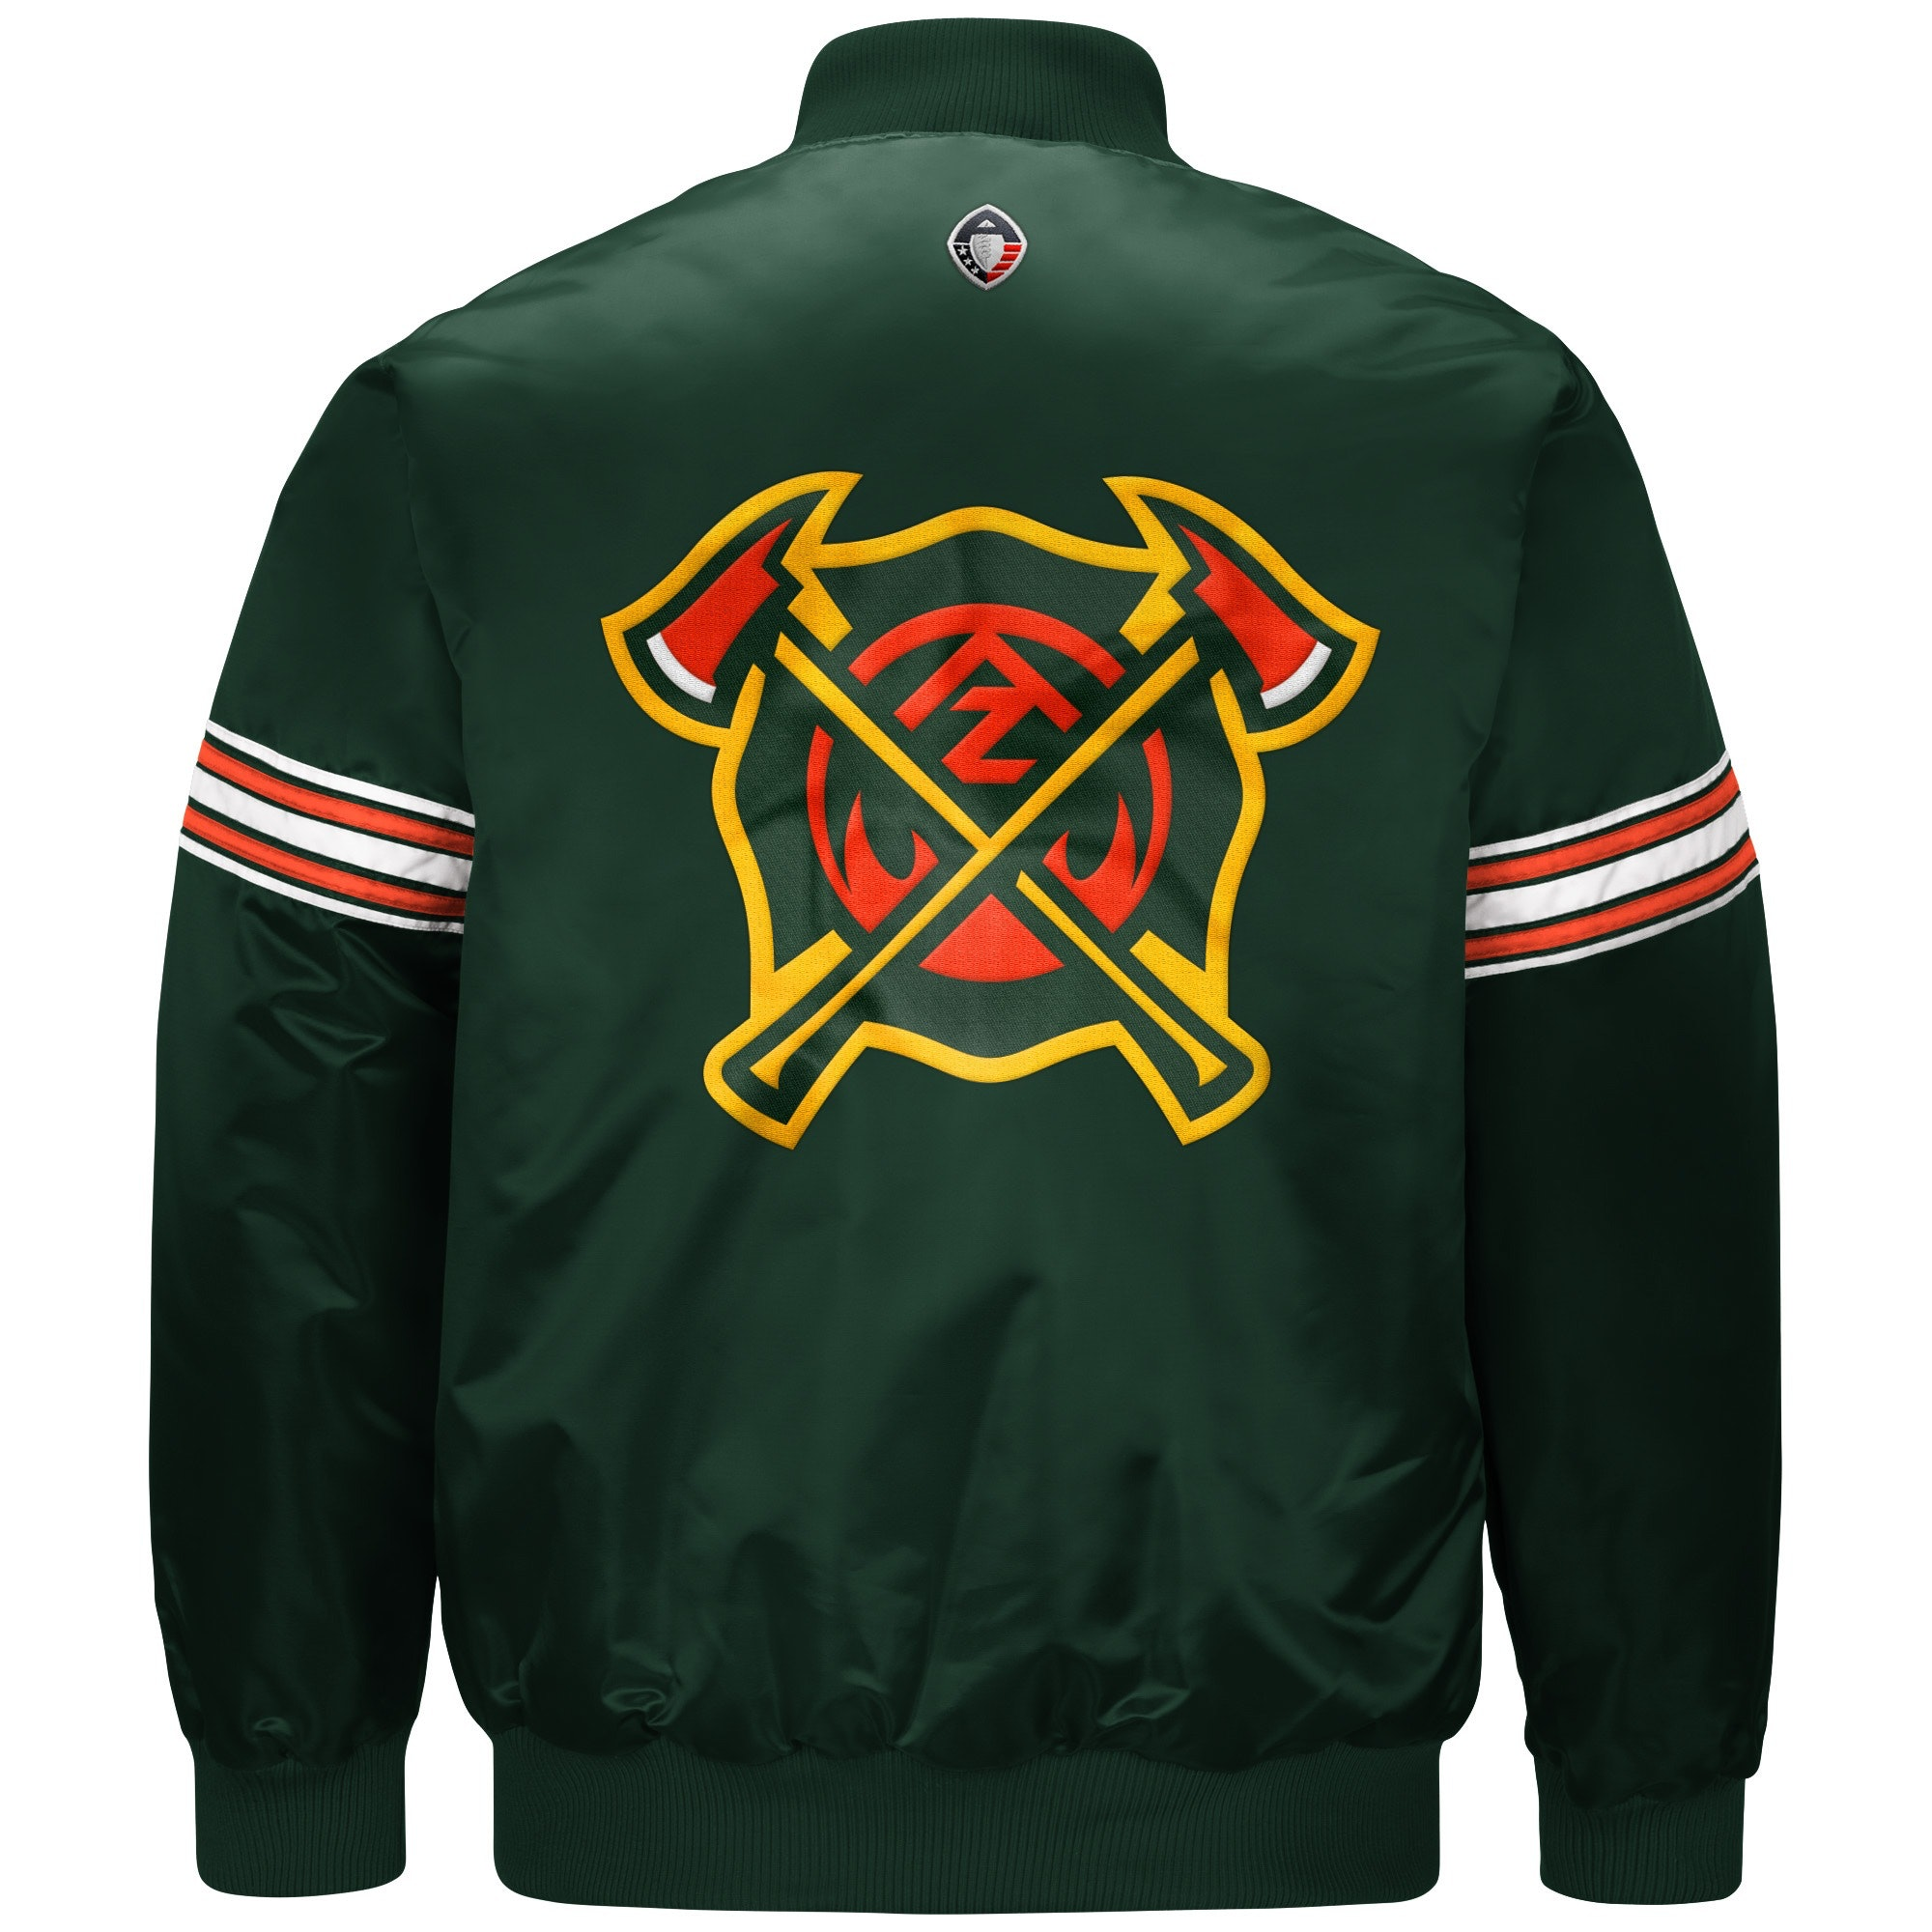 48cba709de8 Get Your First Look at Starter s AAF Varsity Jackets    ONE37pm